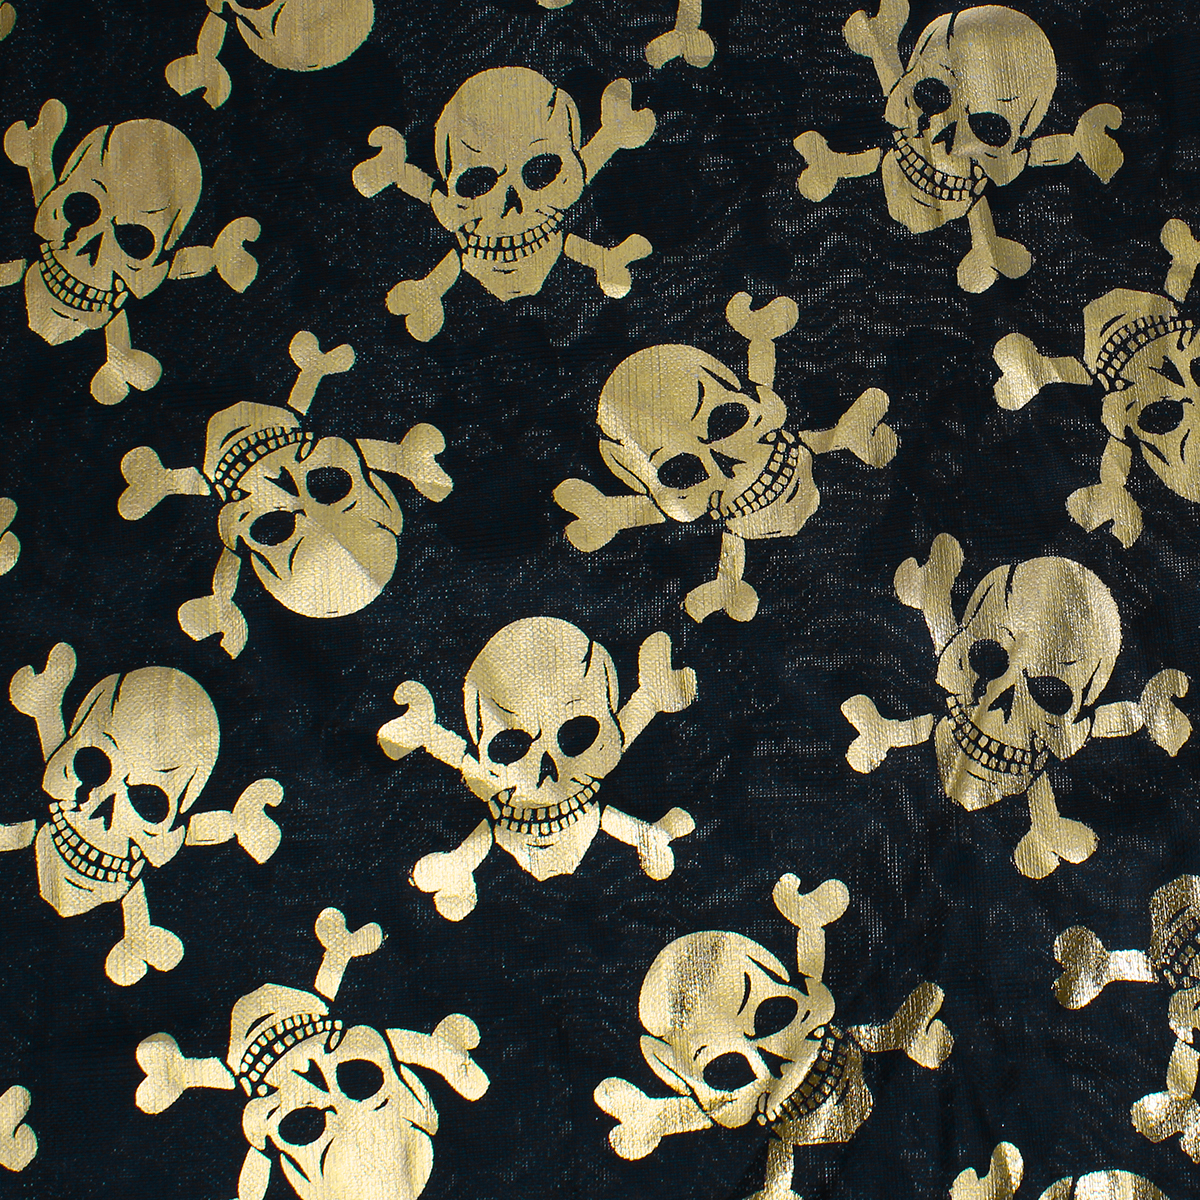 hoomall brand fabric for stage decoration 200x160cm skull halloween fabricchina mainland - Halloween Lace Fabric